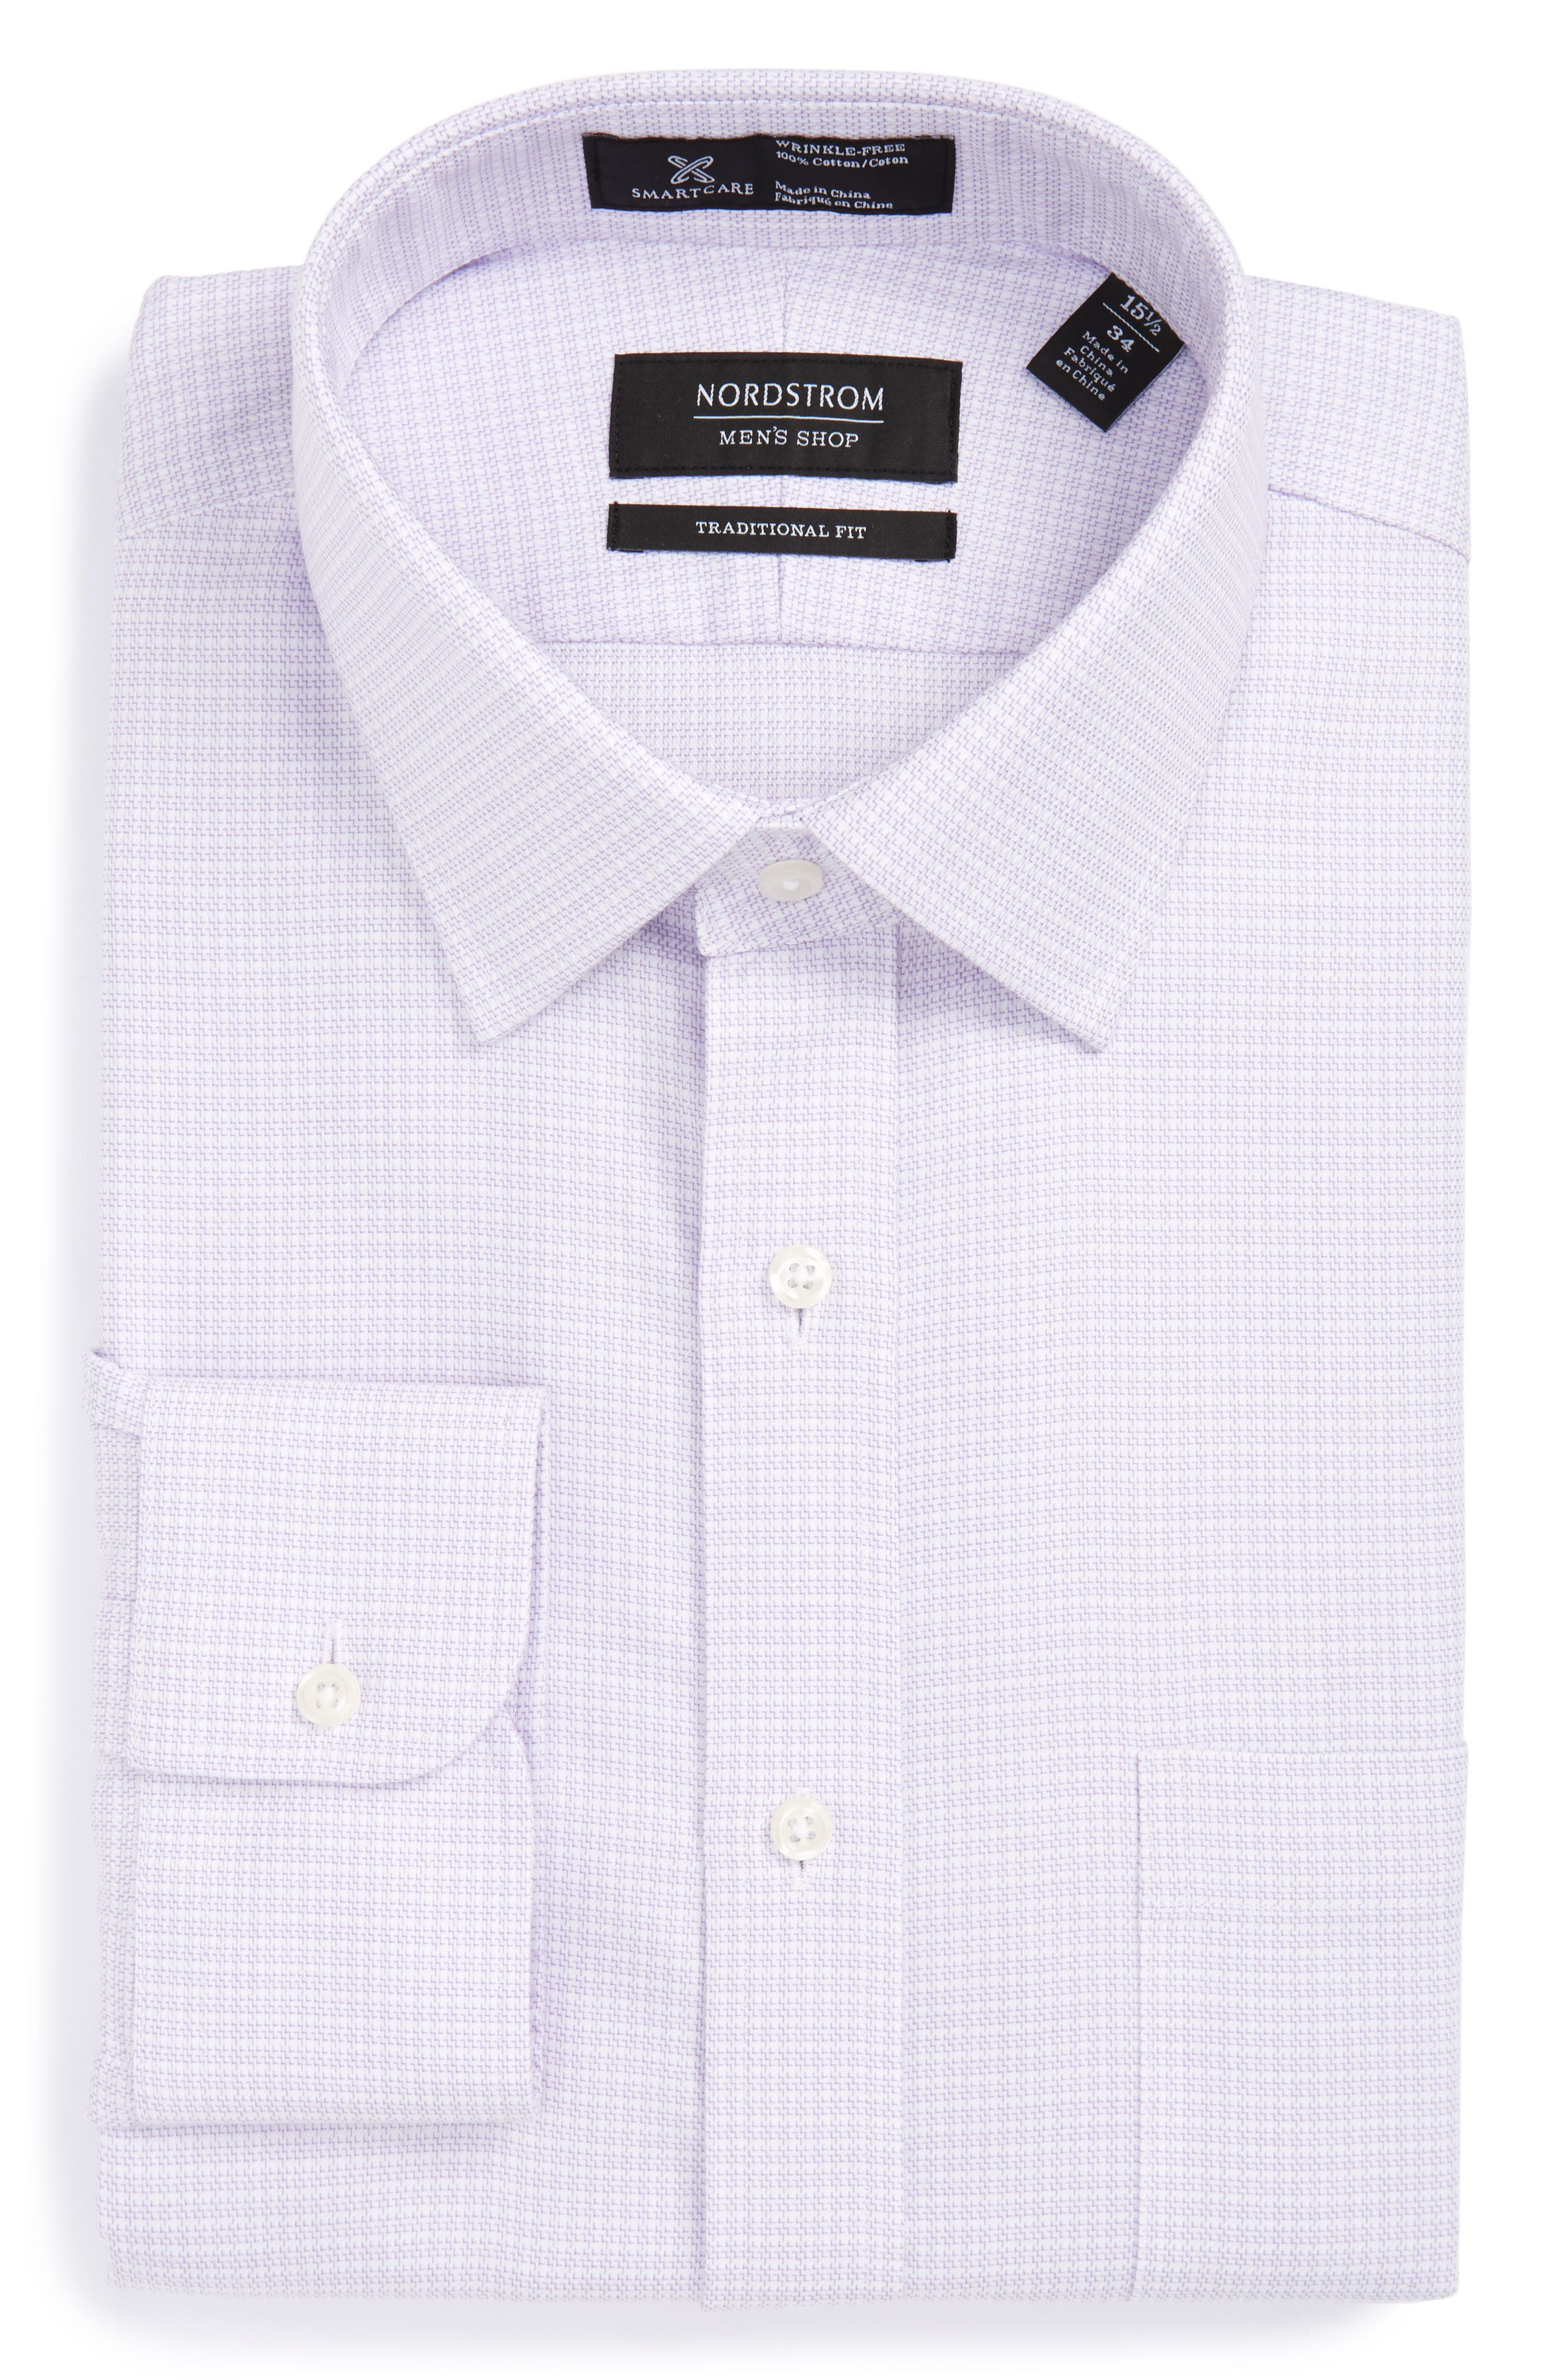 NORDSTROM MENS SHOP Smartcare<sup>™</sup> Traditional Fit Dress Shirt